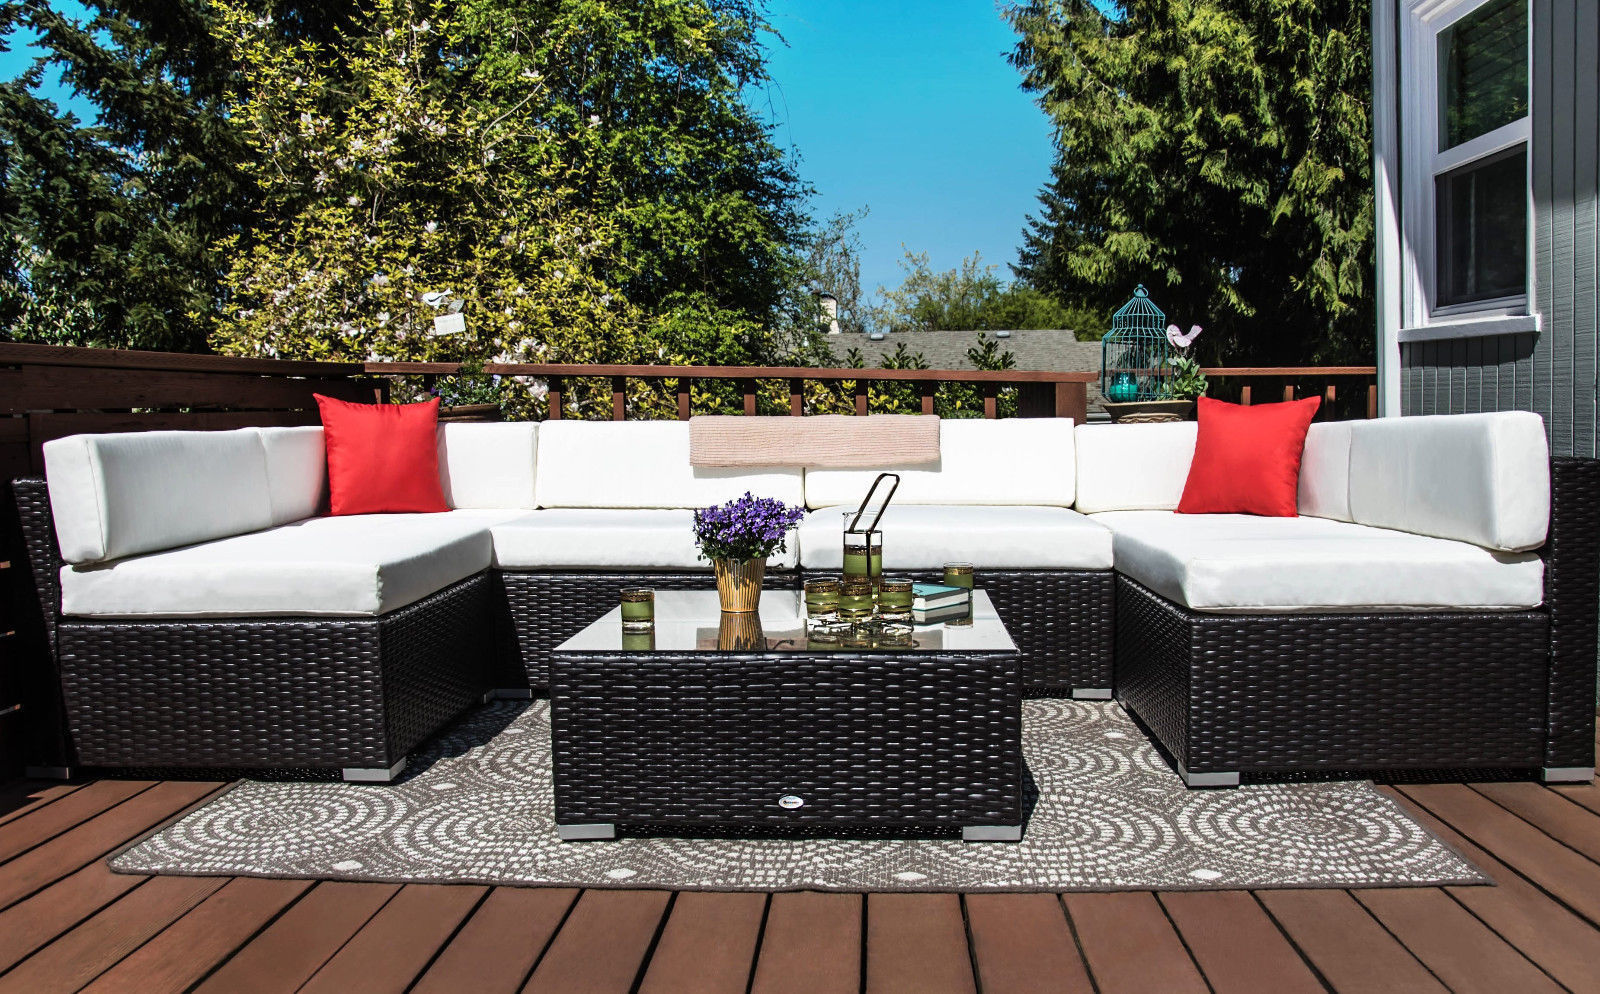 Pleasant Us 569 99 7 Pcs Rattan Wicker Outdoor Patio Furniture Couch Rattan Wicker Sectional Sofa Cushioned Set In Garden Sets From Furniture On Cjindustries Chair Design For Home Cjindustriesco